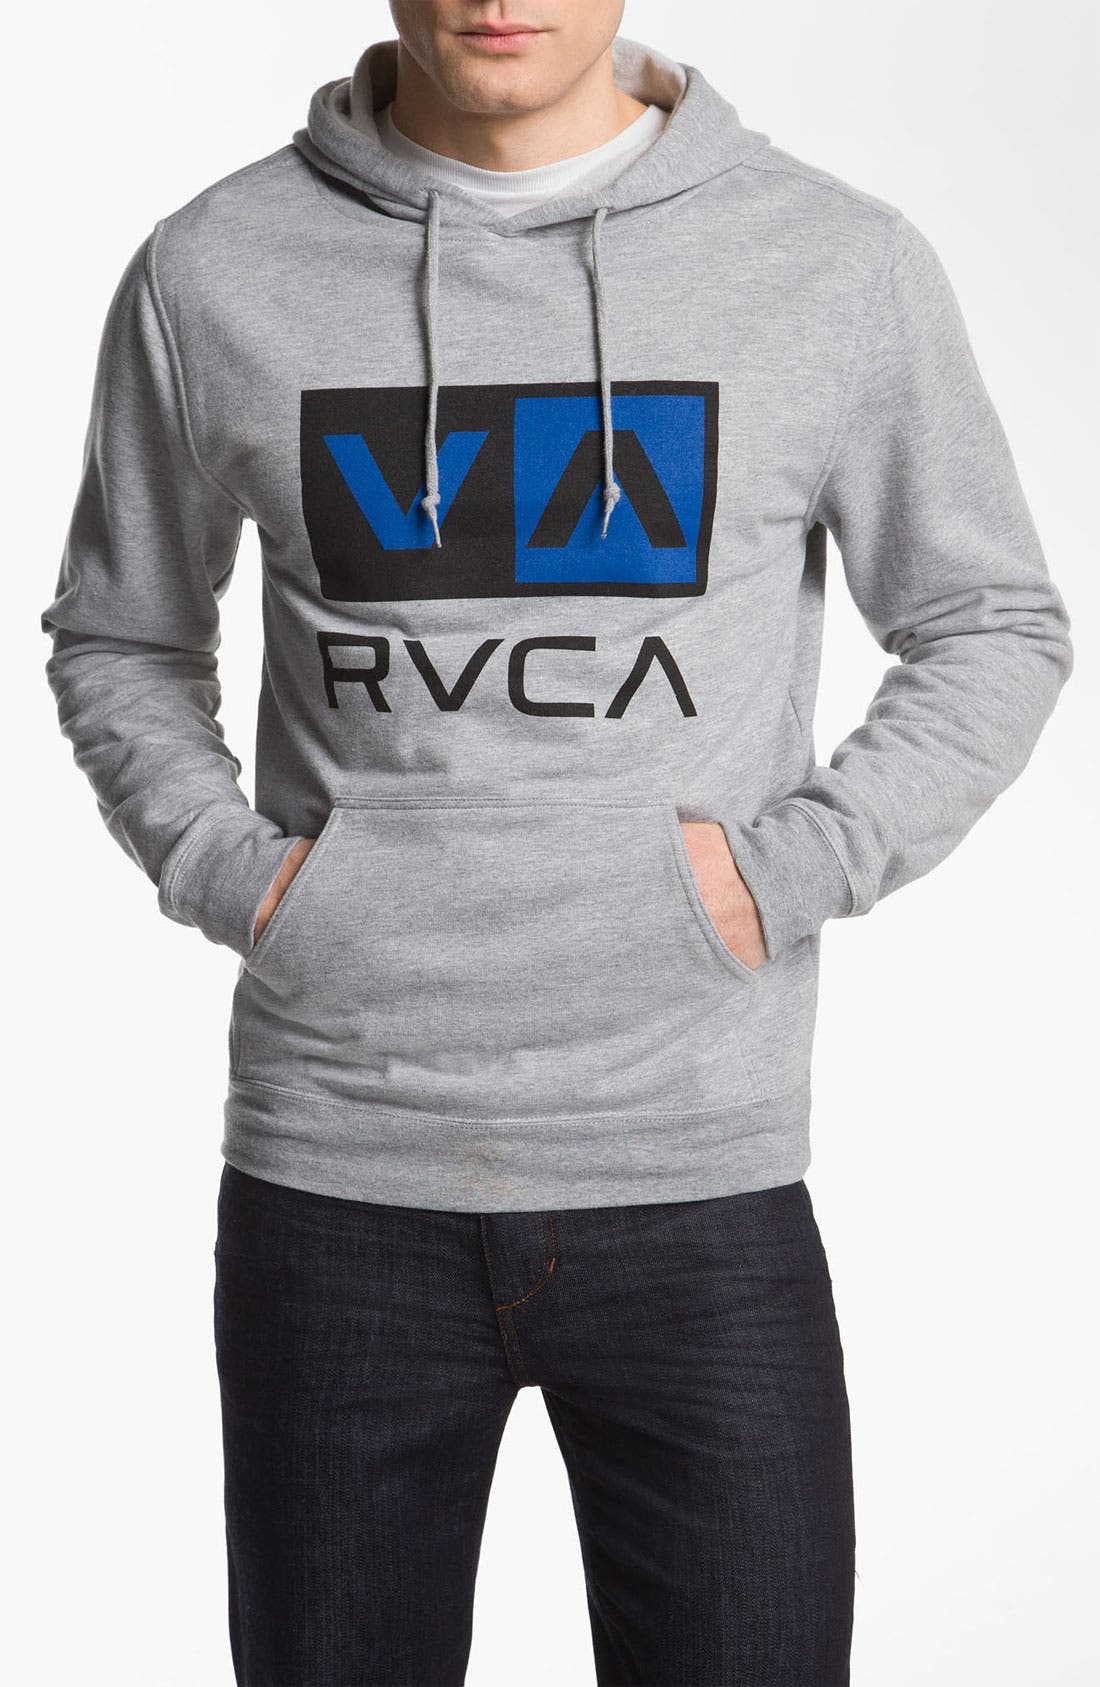 Main Image - RVCA 'Balance Box' Hooded Sweatshirt